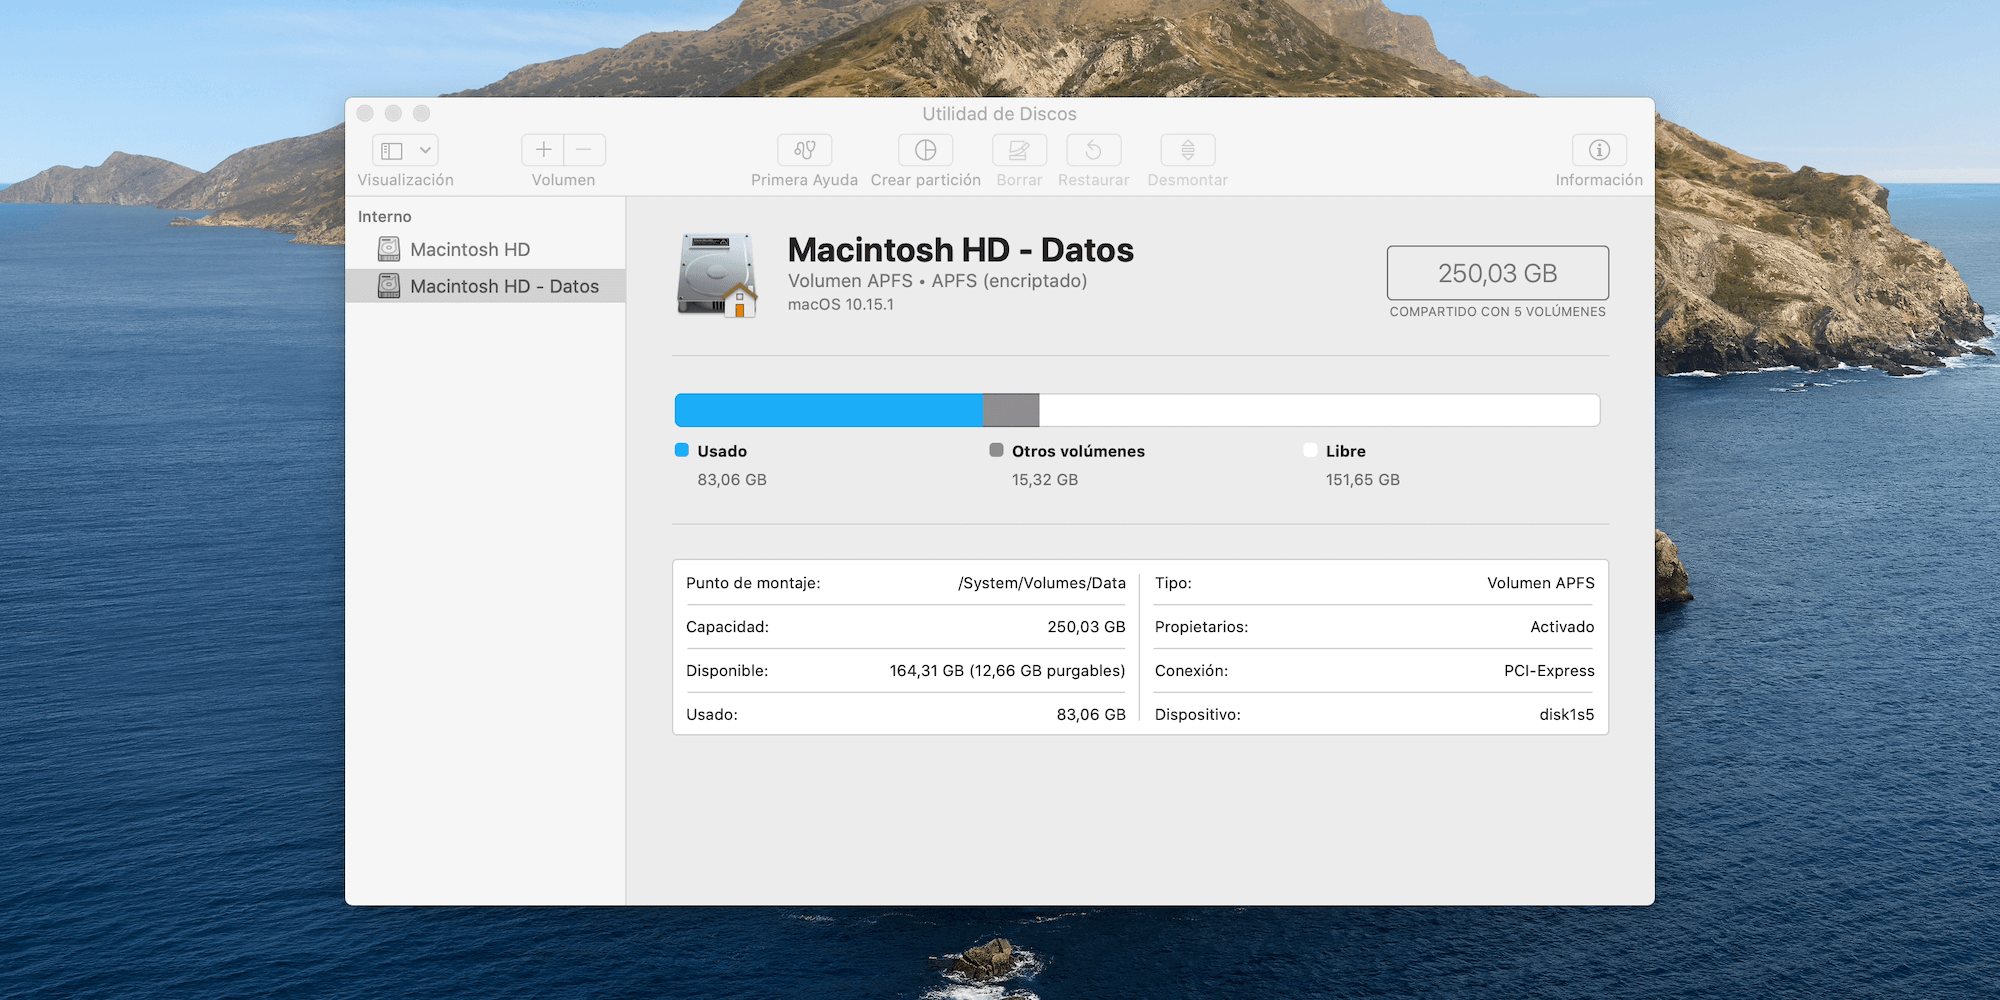 Macintosh HD Datos Hero